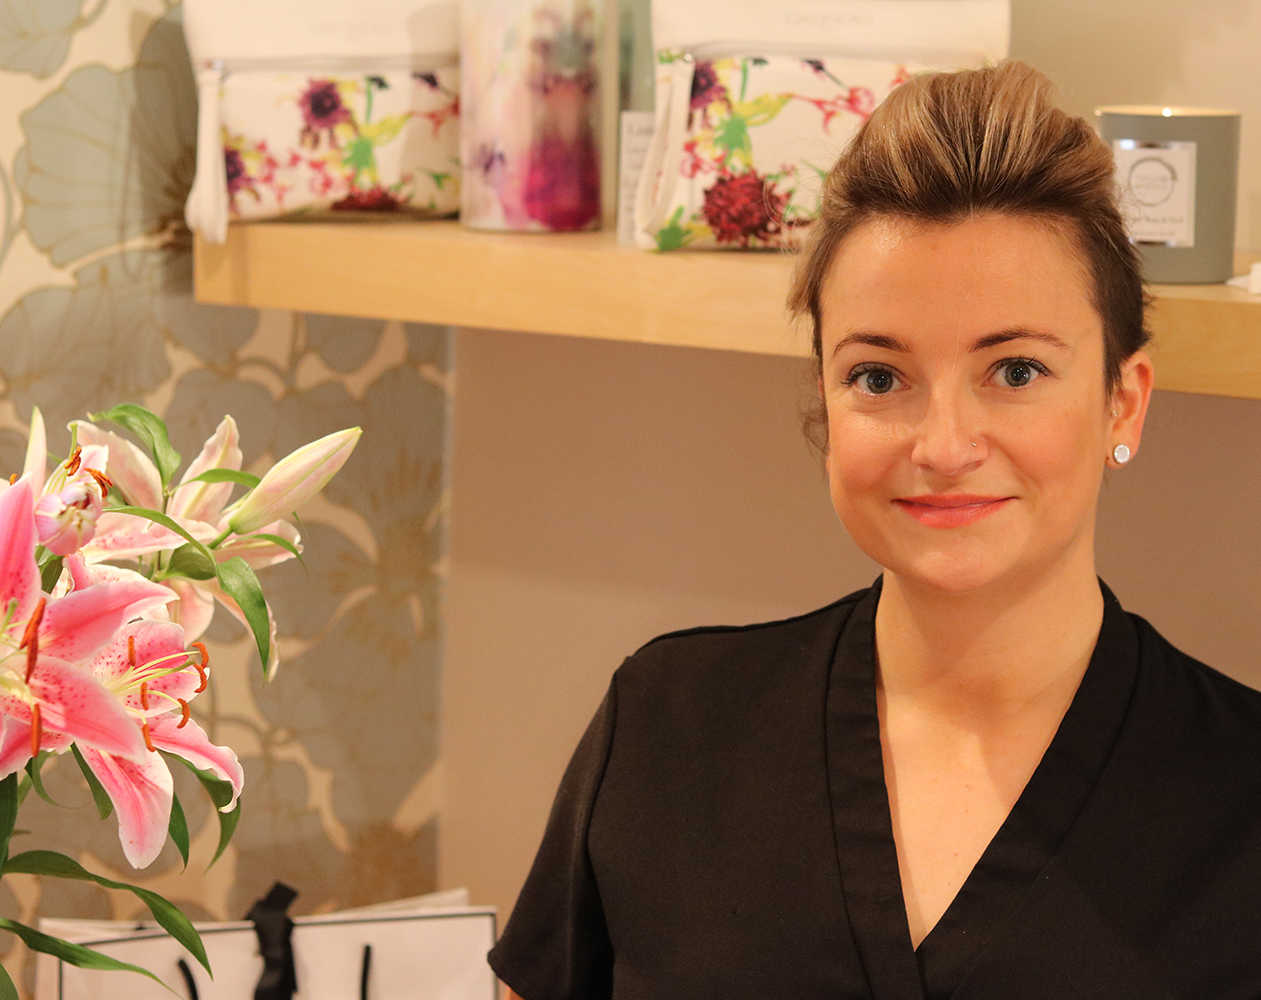 Photo of Lilly Cumming, owner and founder of Lilly's Beauty Room, Harpenden